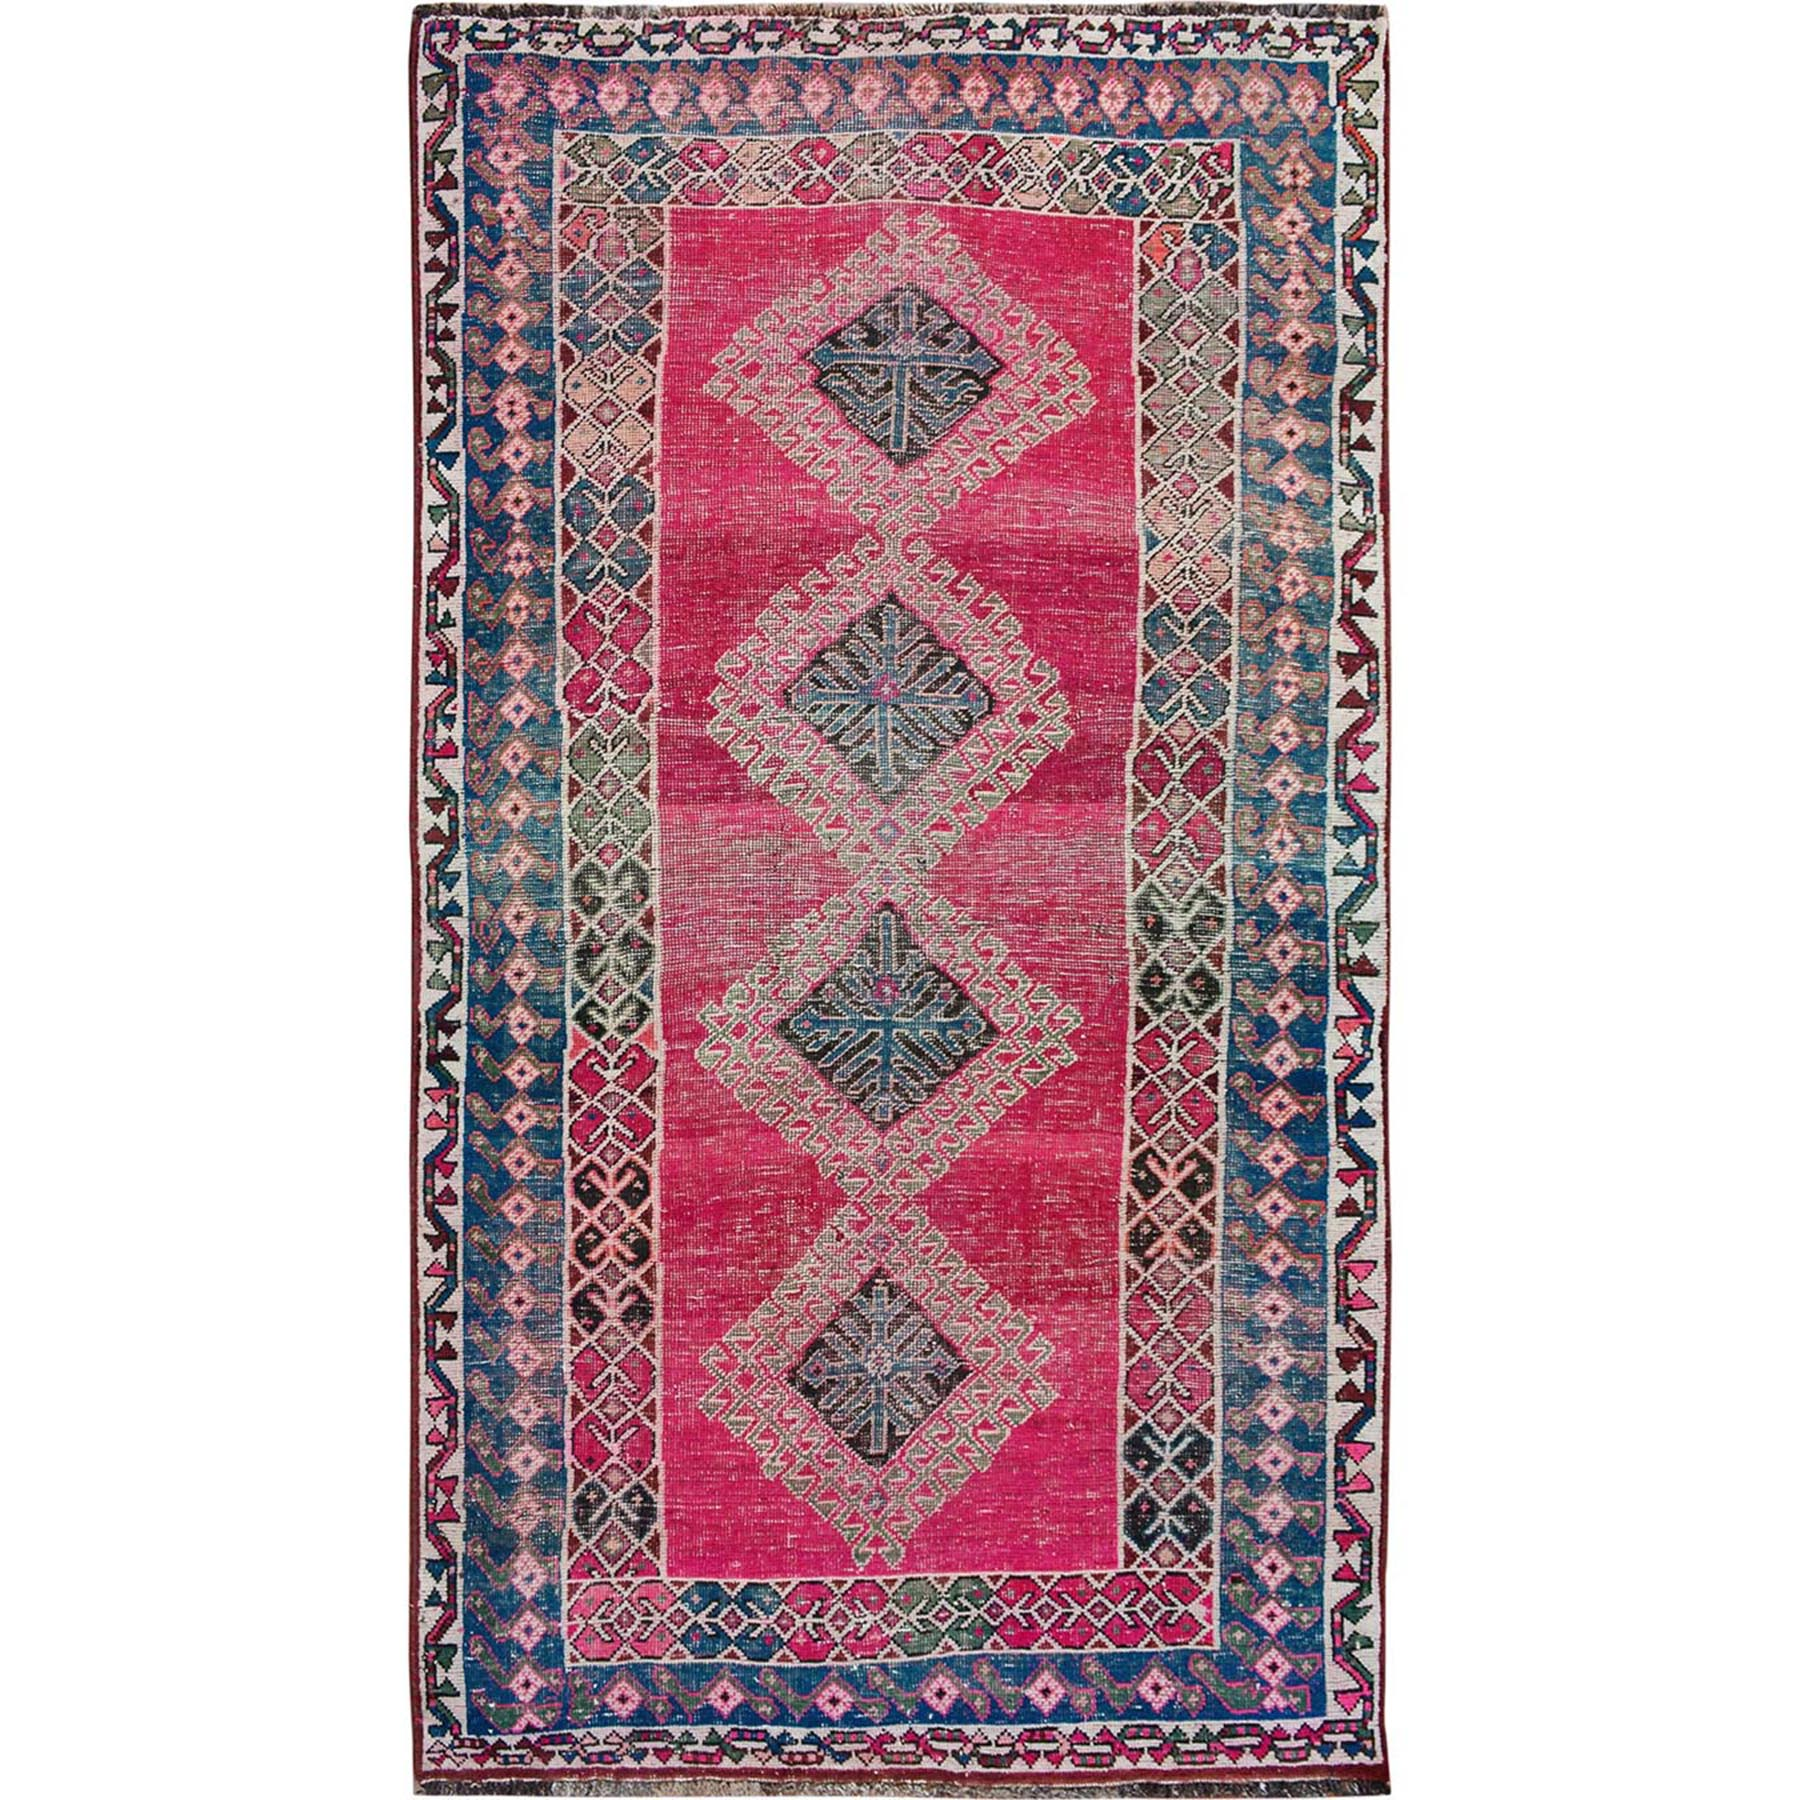 Fetneh Collection And Vintage Overdyed Collection Hand Knotted Pink Rug No: 01114456